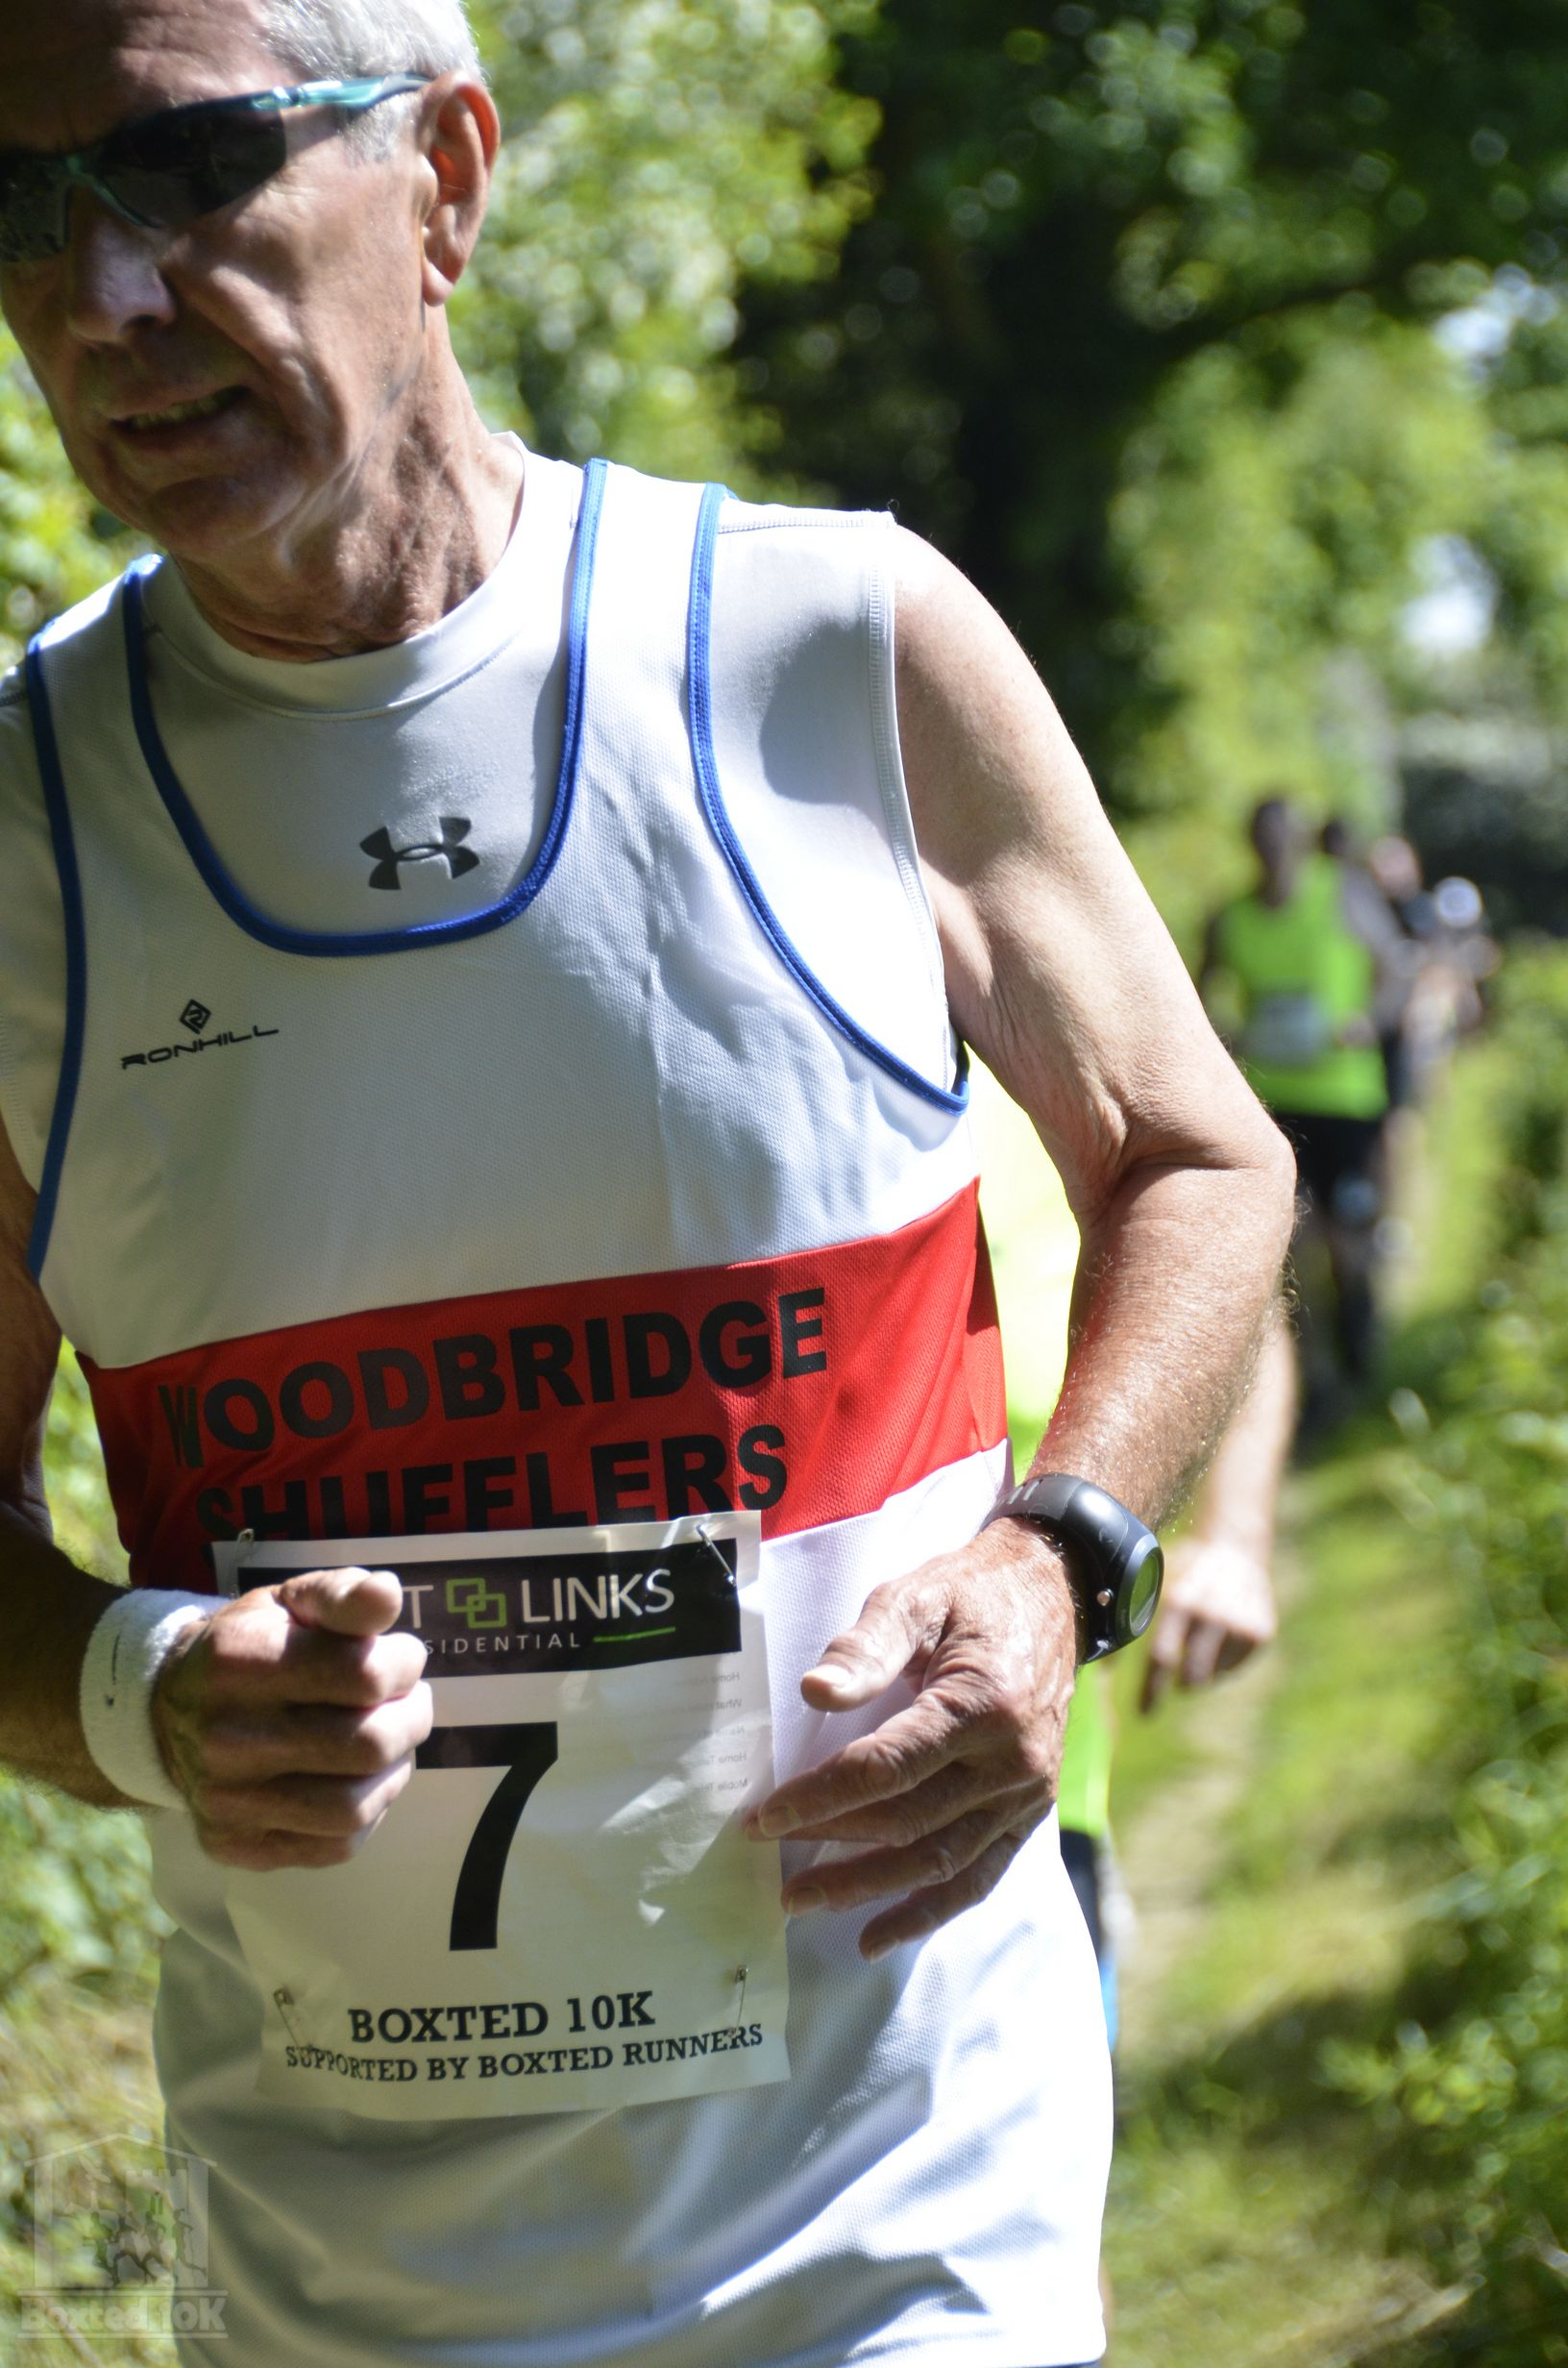 Boxted10k-00281